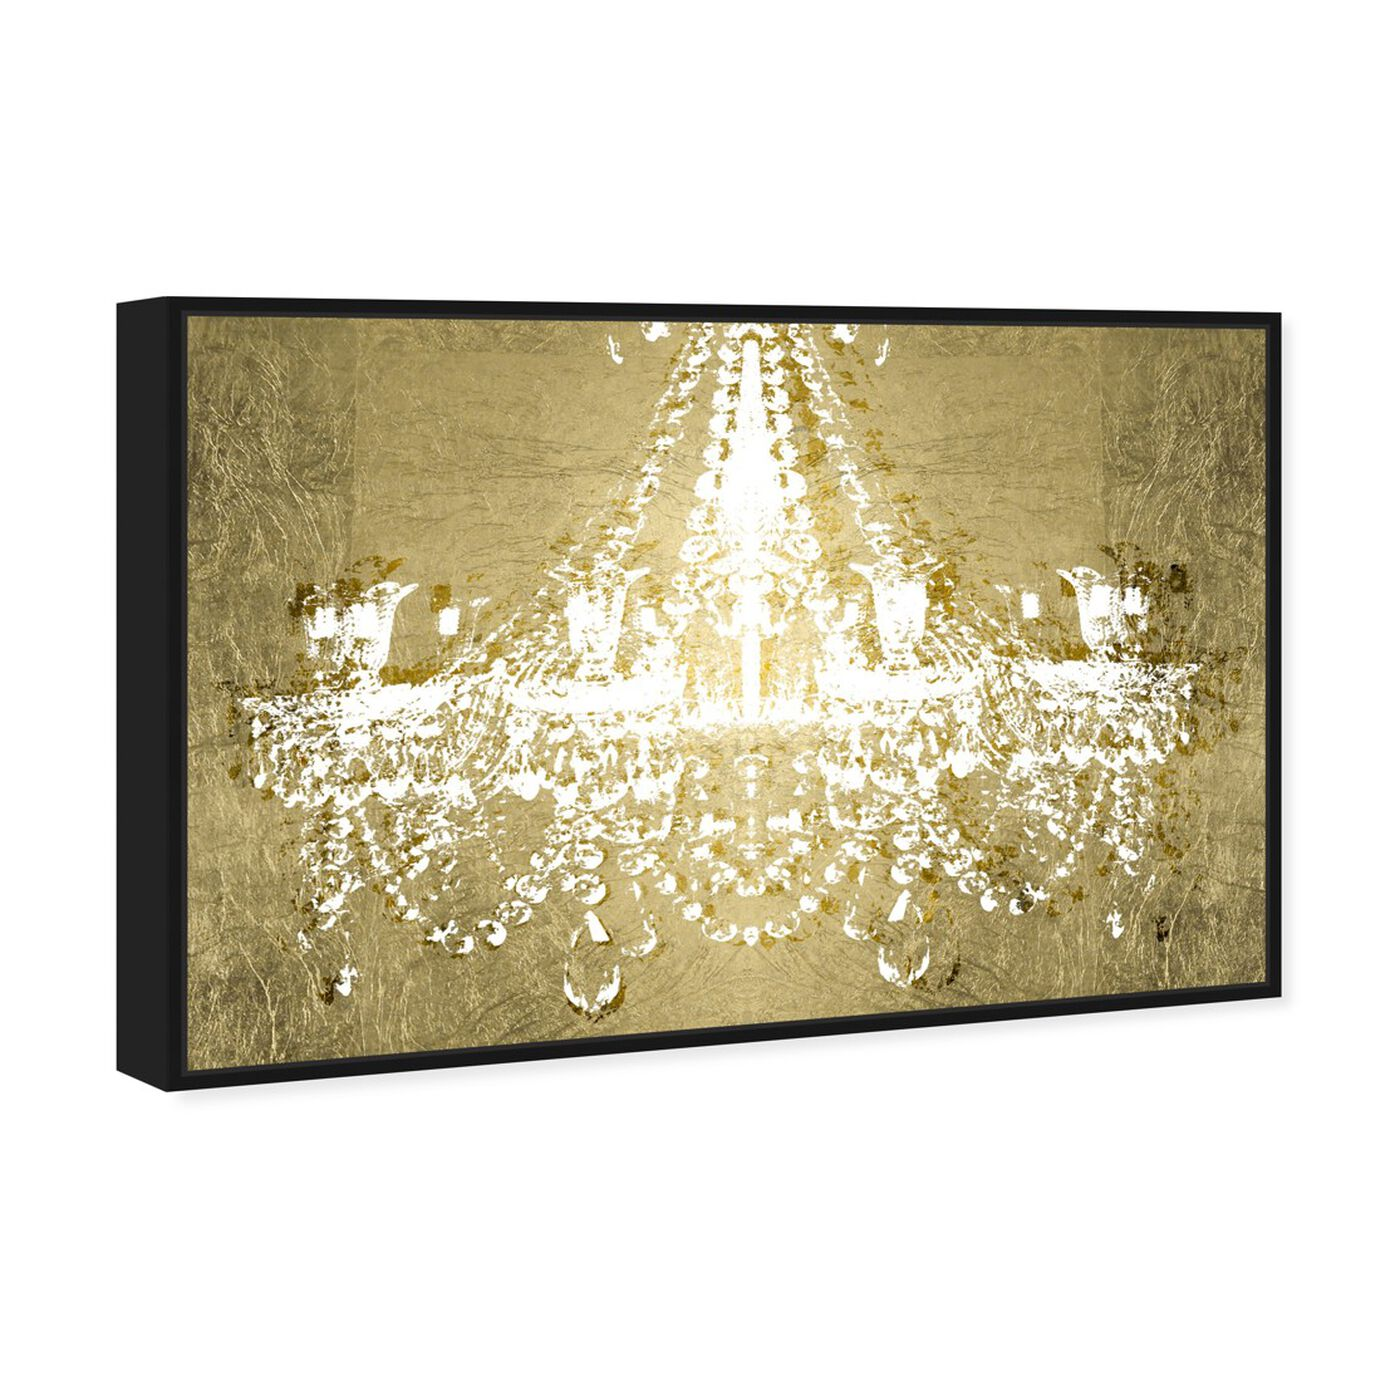 Angled view of Dramatic Entrance GOLD featuring fashion and glam and chandeliers art.